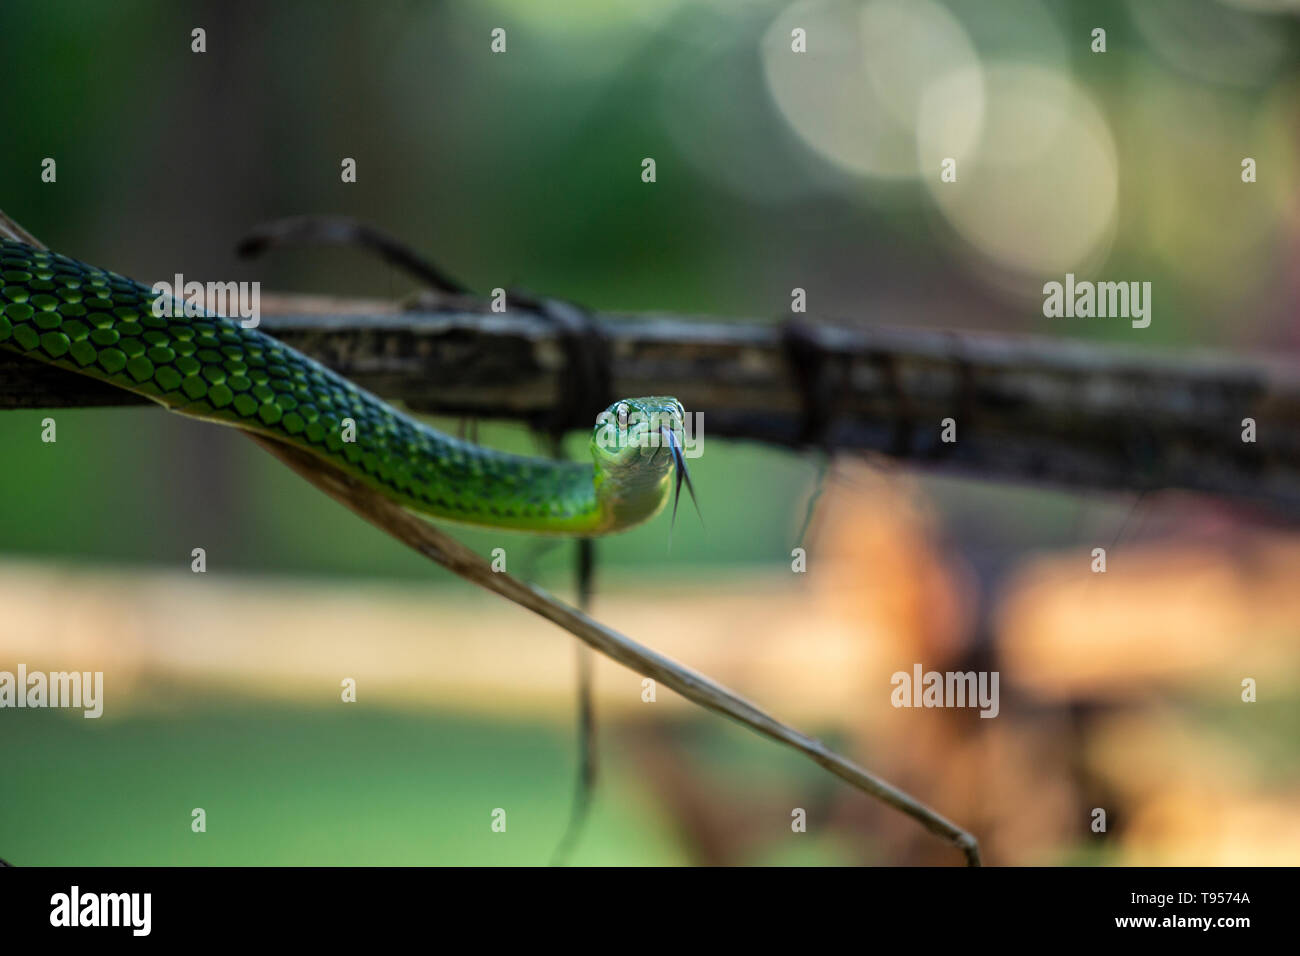 Angola Green Snake with it's tongue out - Stock Image